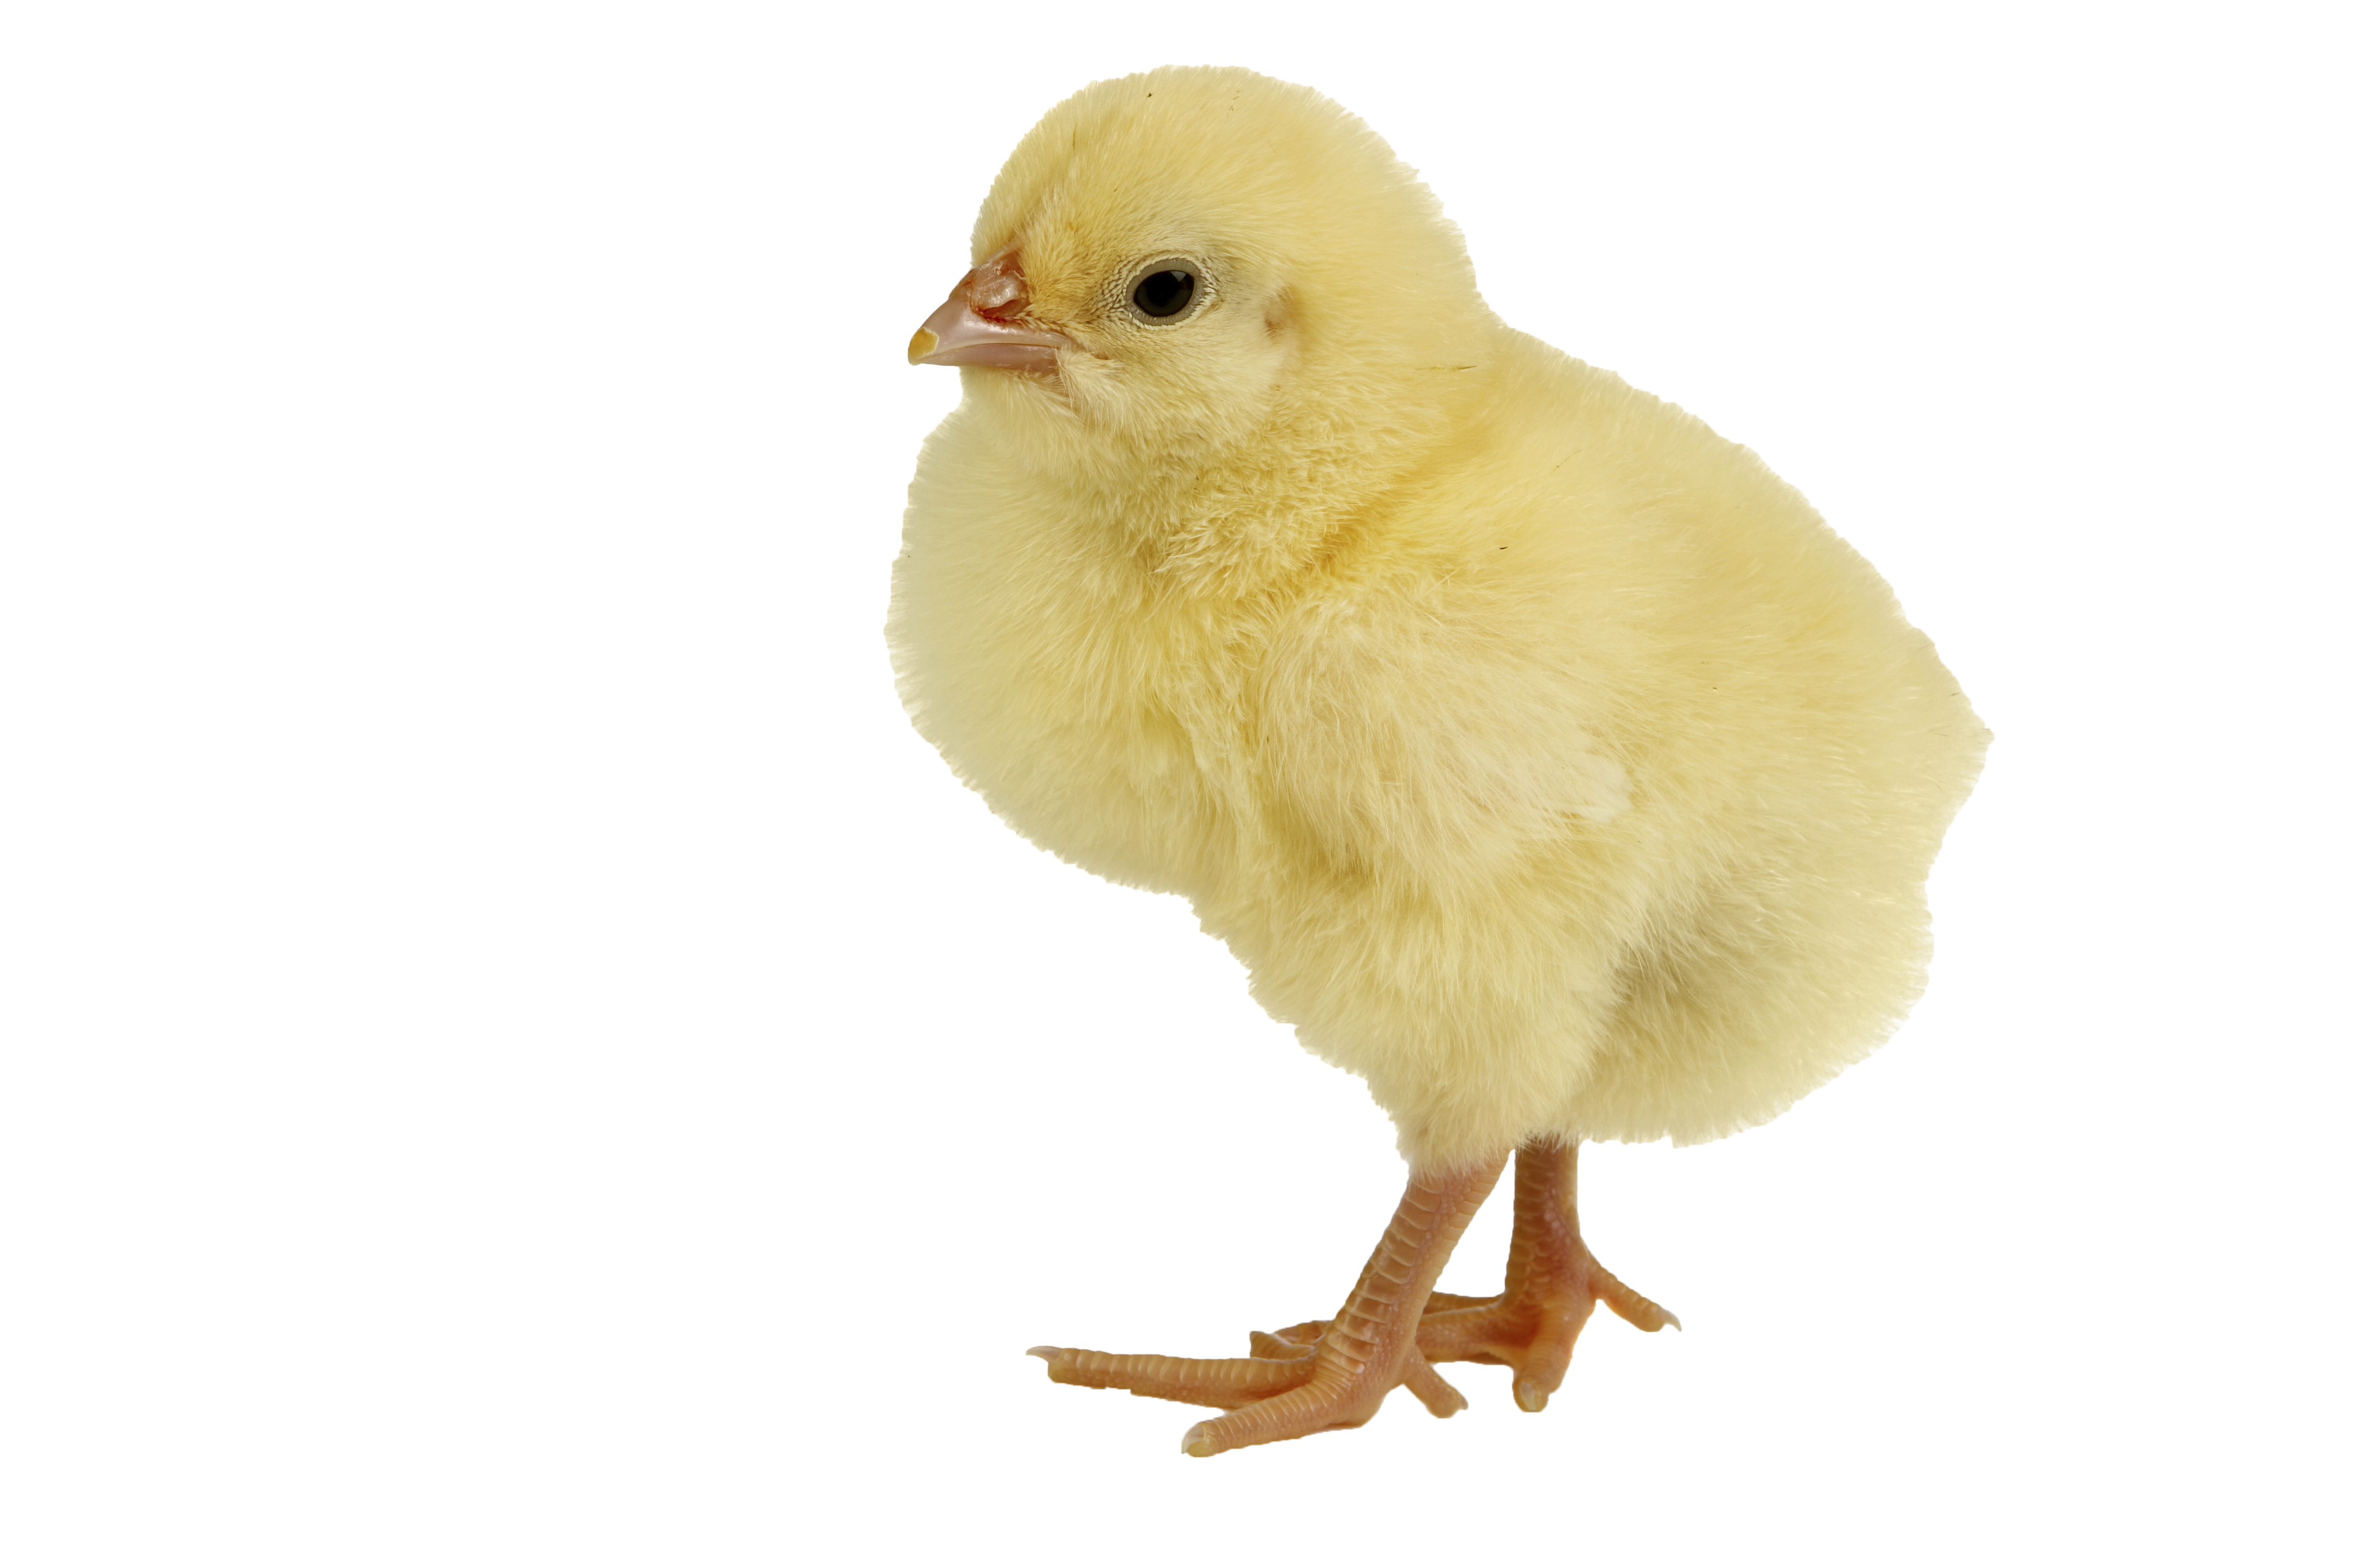 Chicken transparent png pictures. Hen clipart baby chick